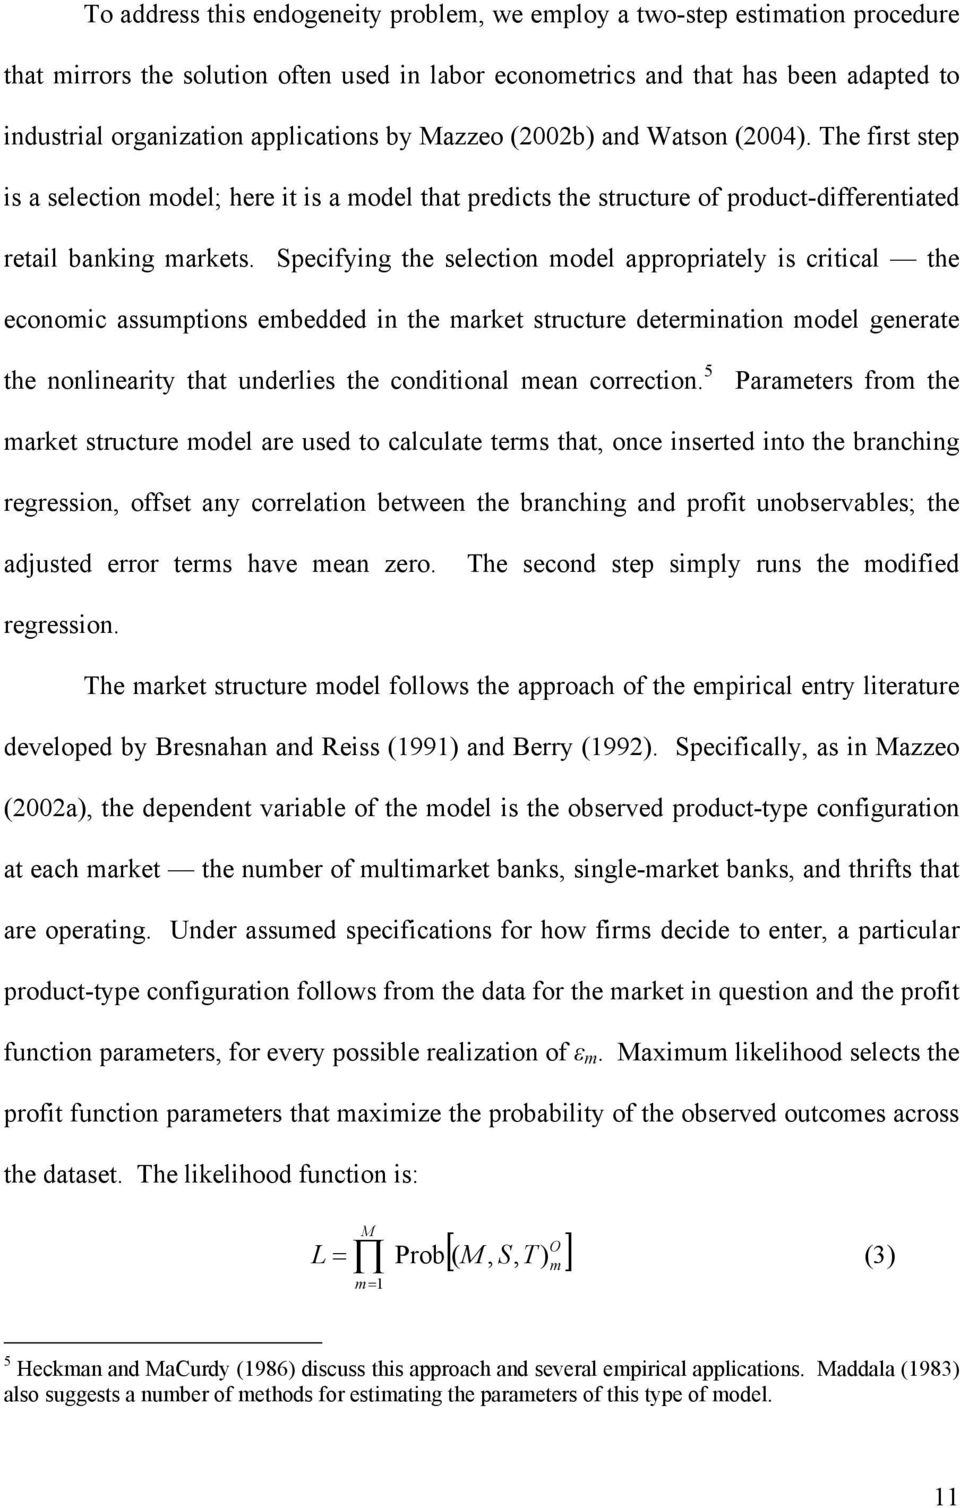 Specifying the selection model appropriately is critical the economic assumptions embedded in the market structure determination model generate the nonlinearity that underlies the conditional mean